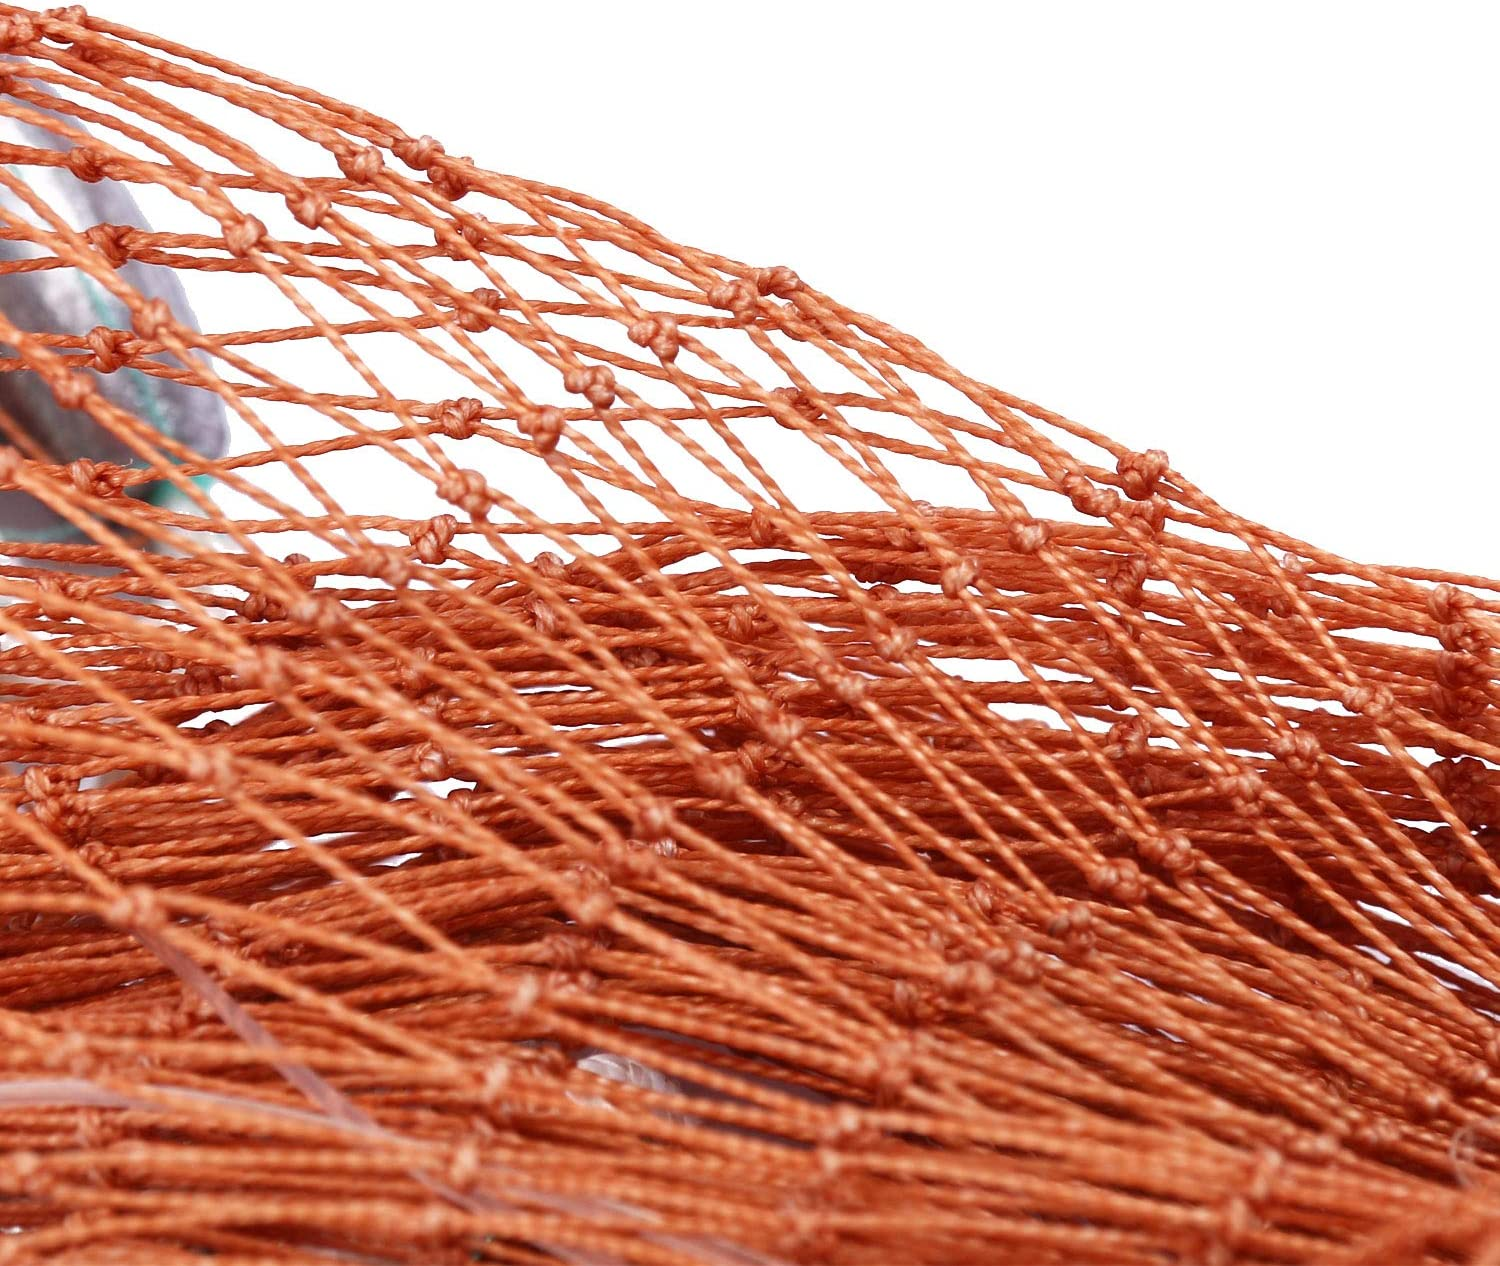 YaeMarine Freshwater Fishing Cast Net for Bait Trap Fish Saltwater Hand Throw Fishing Cast Net with Environmental Friendly Material Sinker